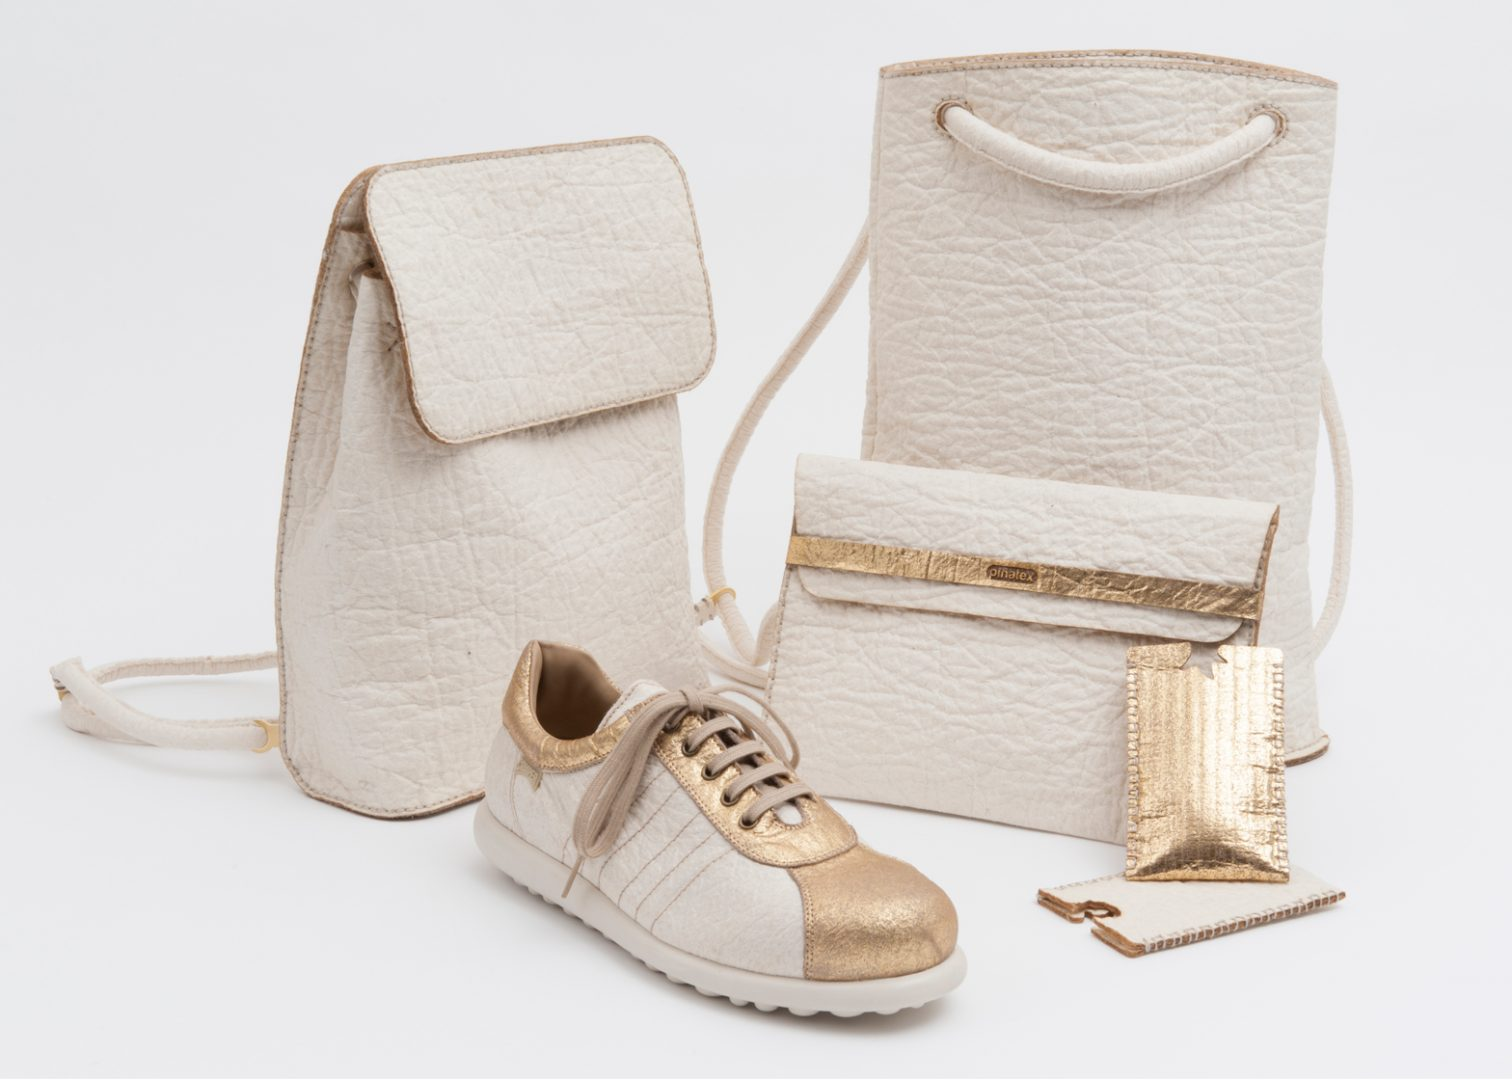 Piñatex, a sustainable textile startup turning pineapple leaves into vegan leather